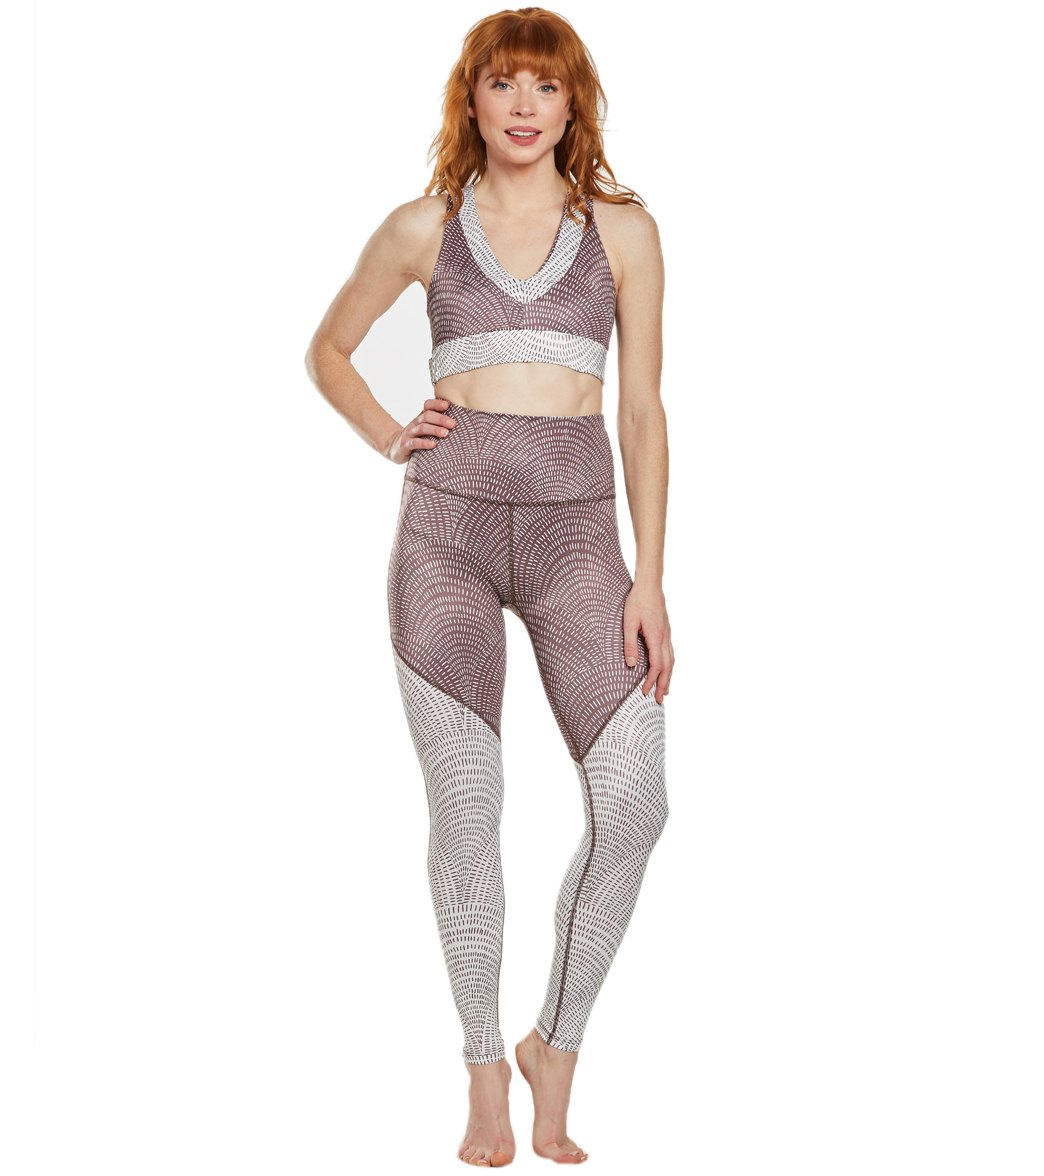 69c4fdd7be69c9 Beyond Yoga Lux High Waisted Angled 7/8 Yoga Leggings at YogaOutlet ...